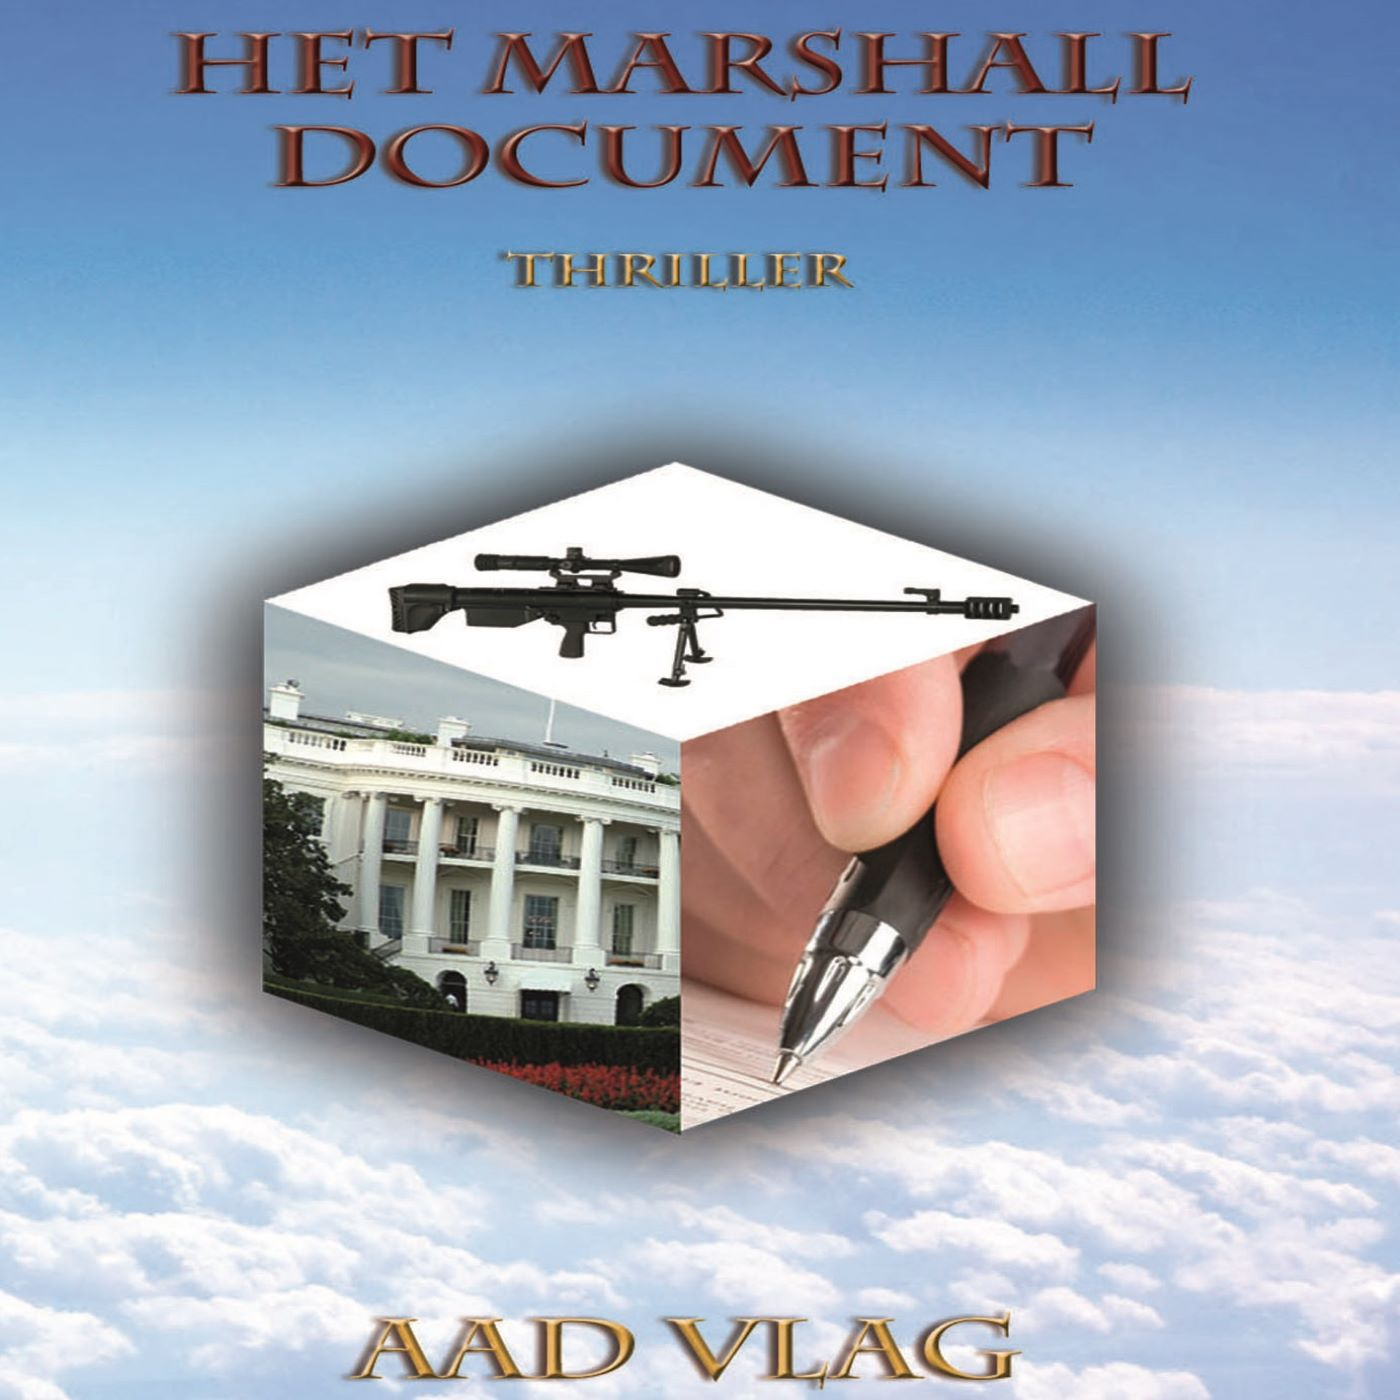 Het Marshall document